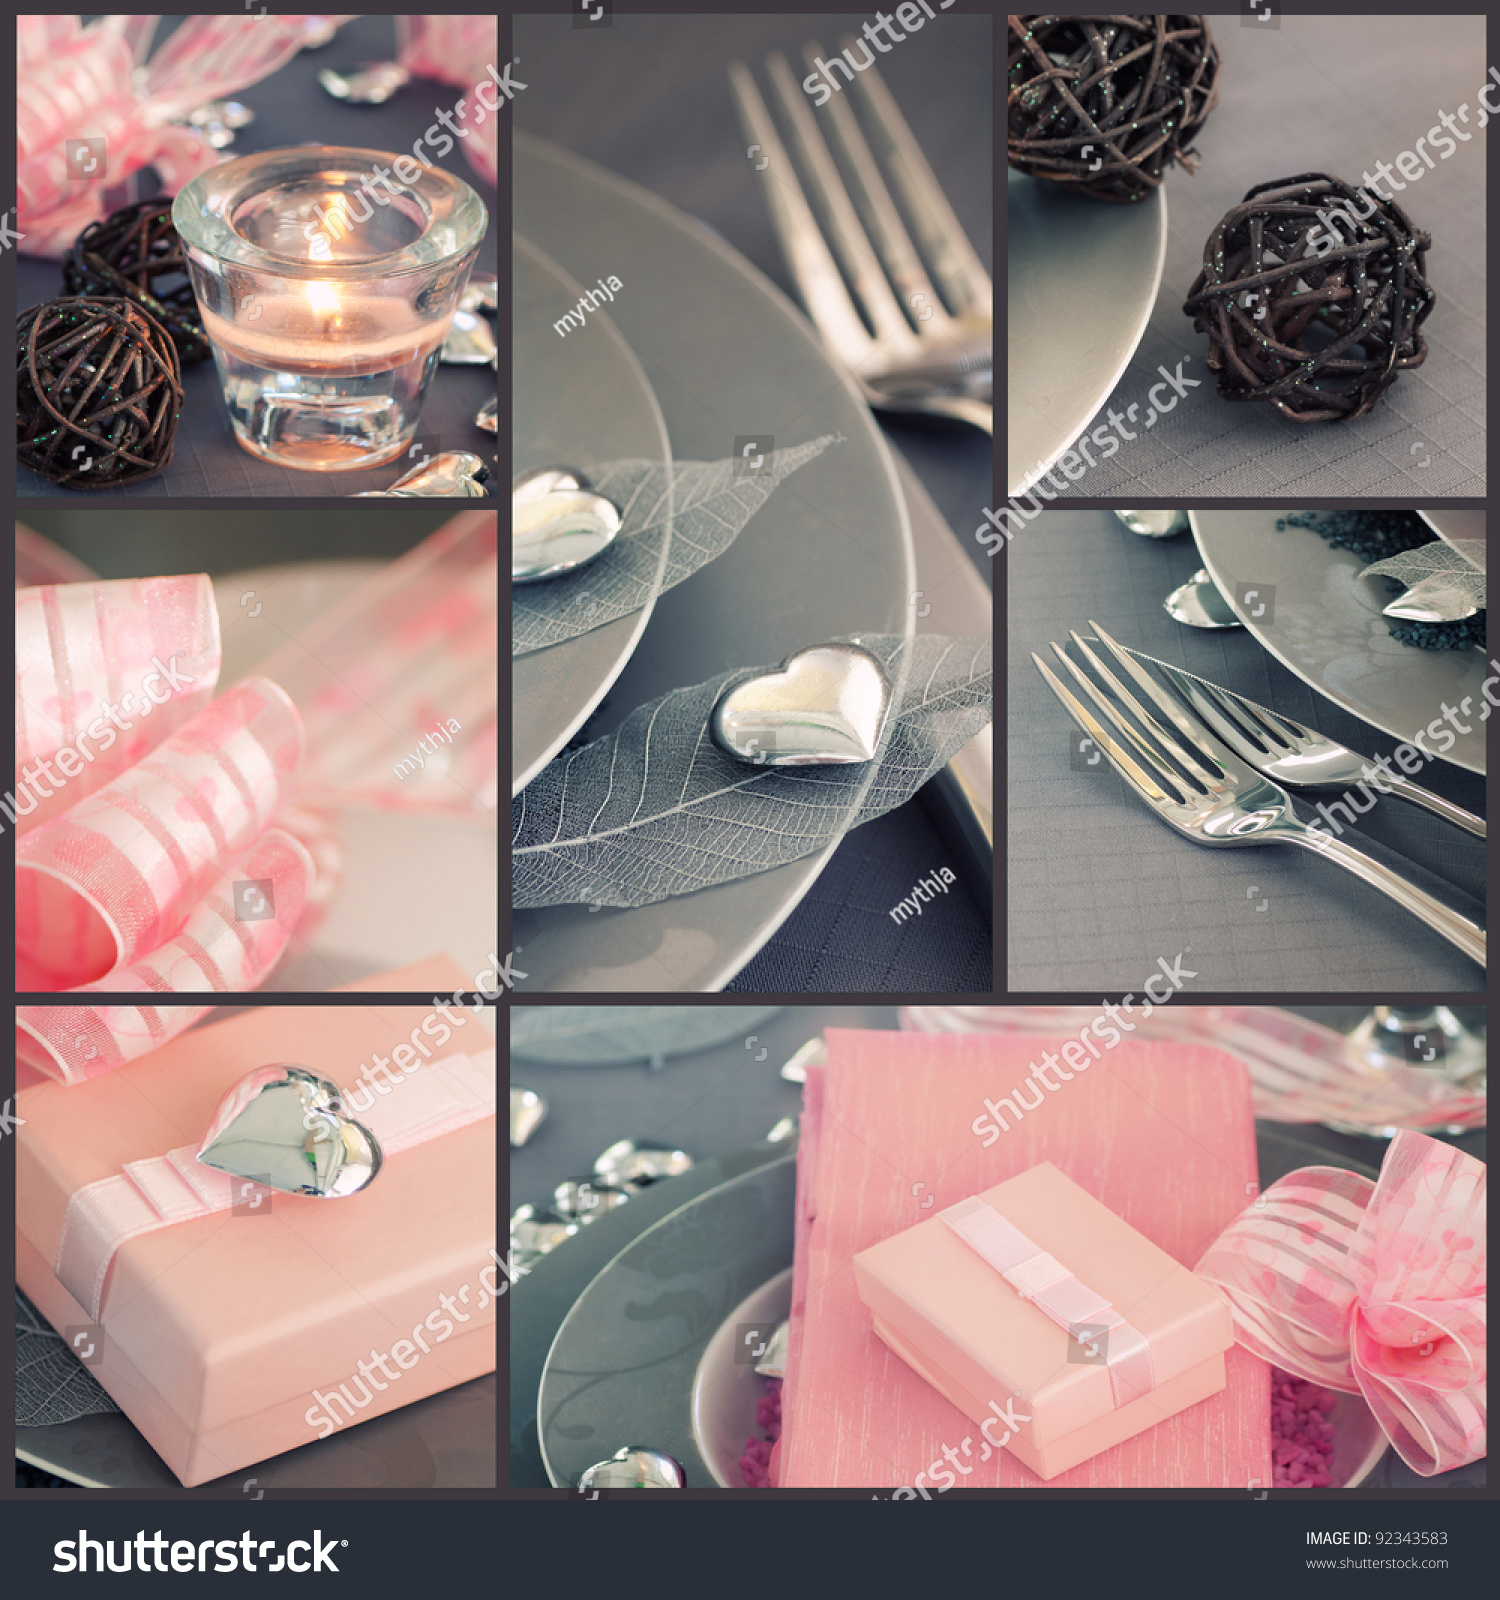 Fancy restaurant table setting - Restaurant Series Collage Of Fancy Valentine S Day Dinner Holiday Luxury Table Setting With Beautiful